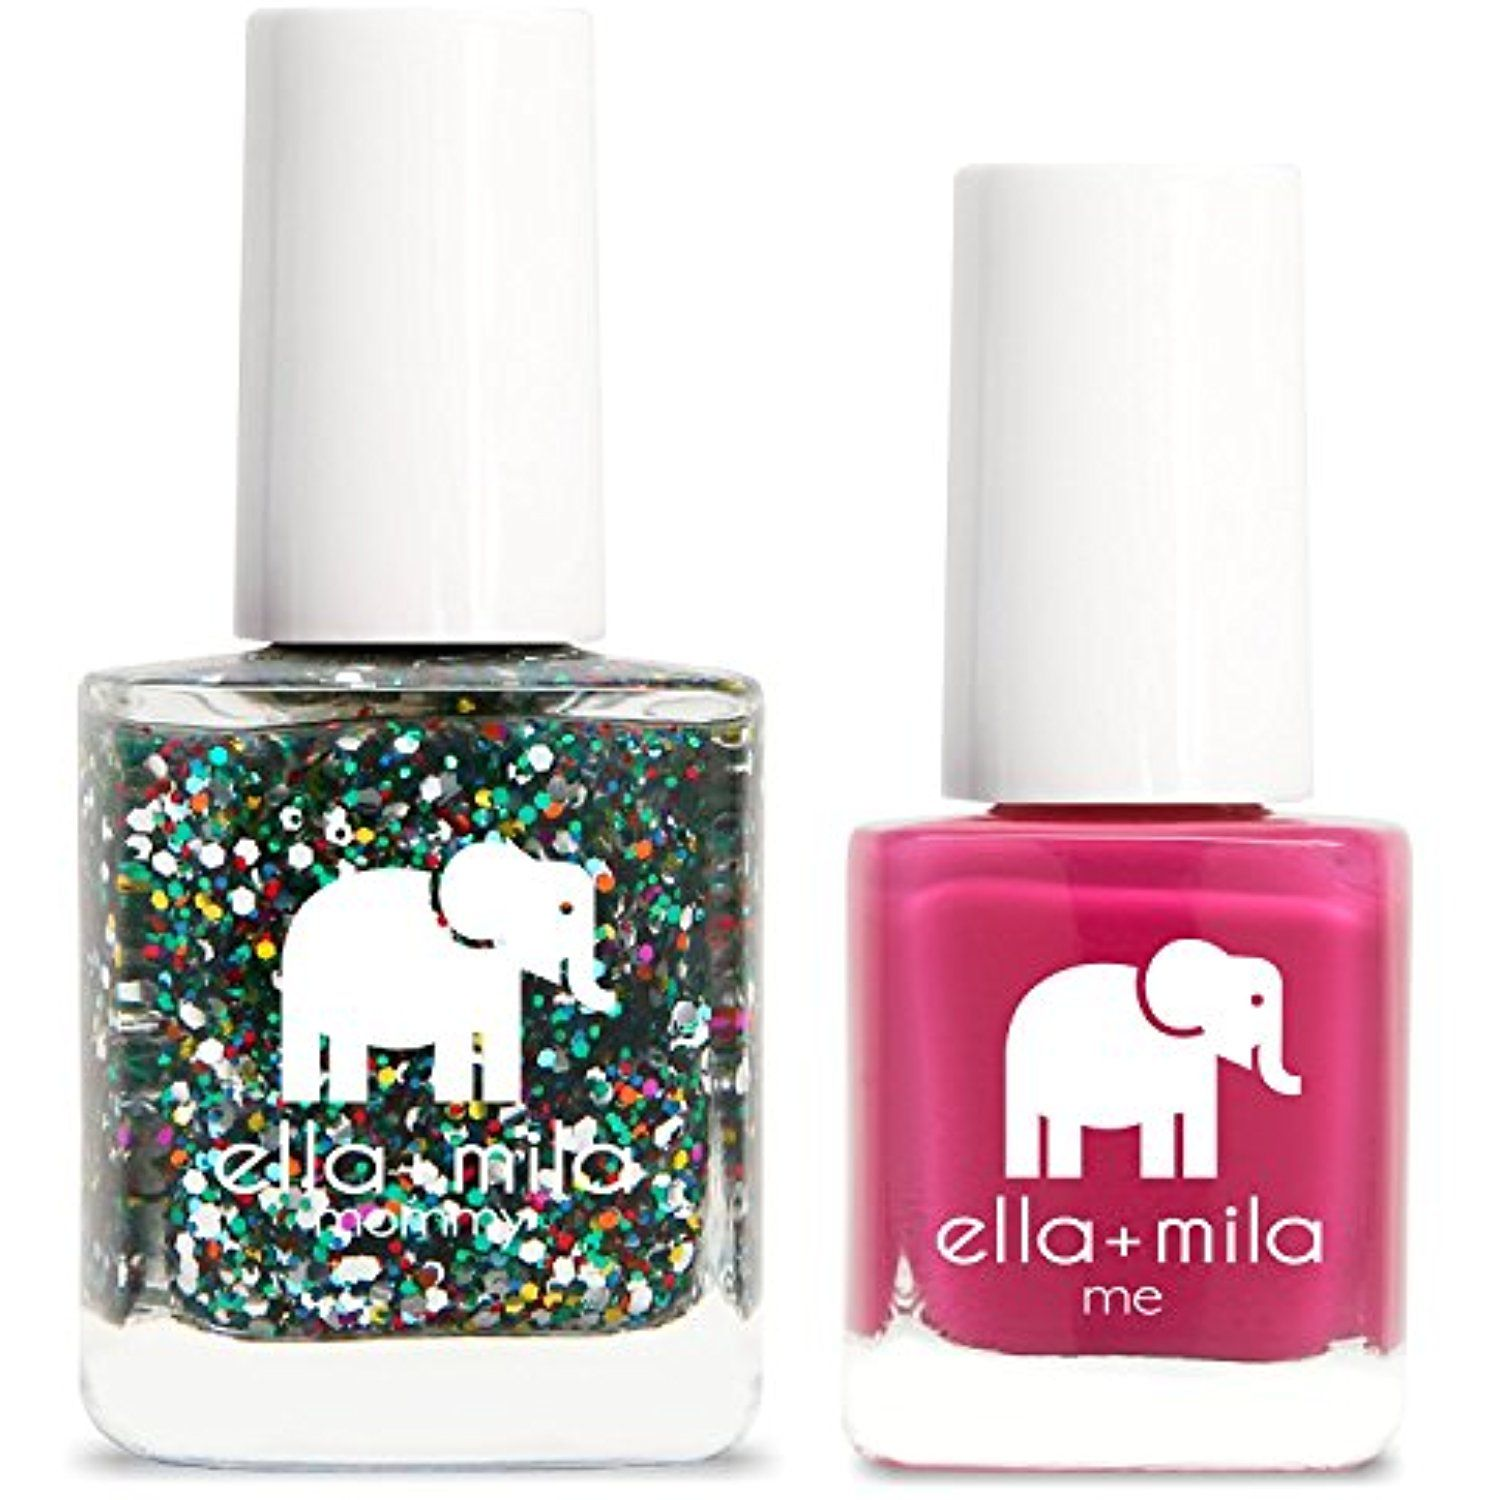 ella mila Nail Polish, mommy #FootHandNailCare | Foot, Hand & Nail ...